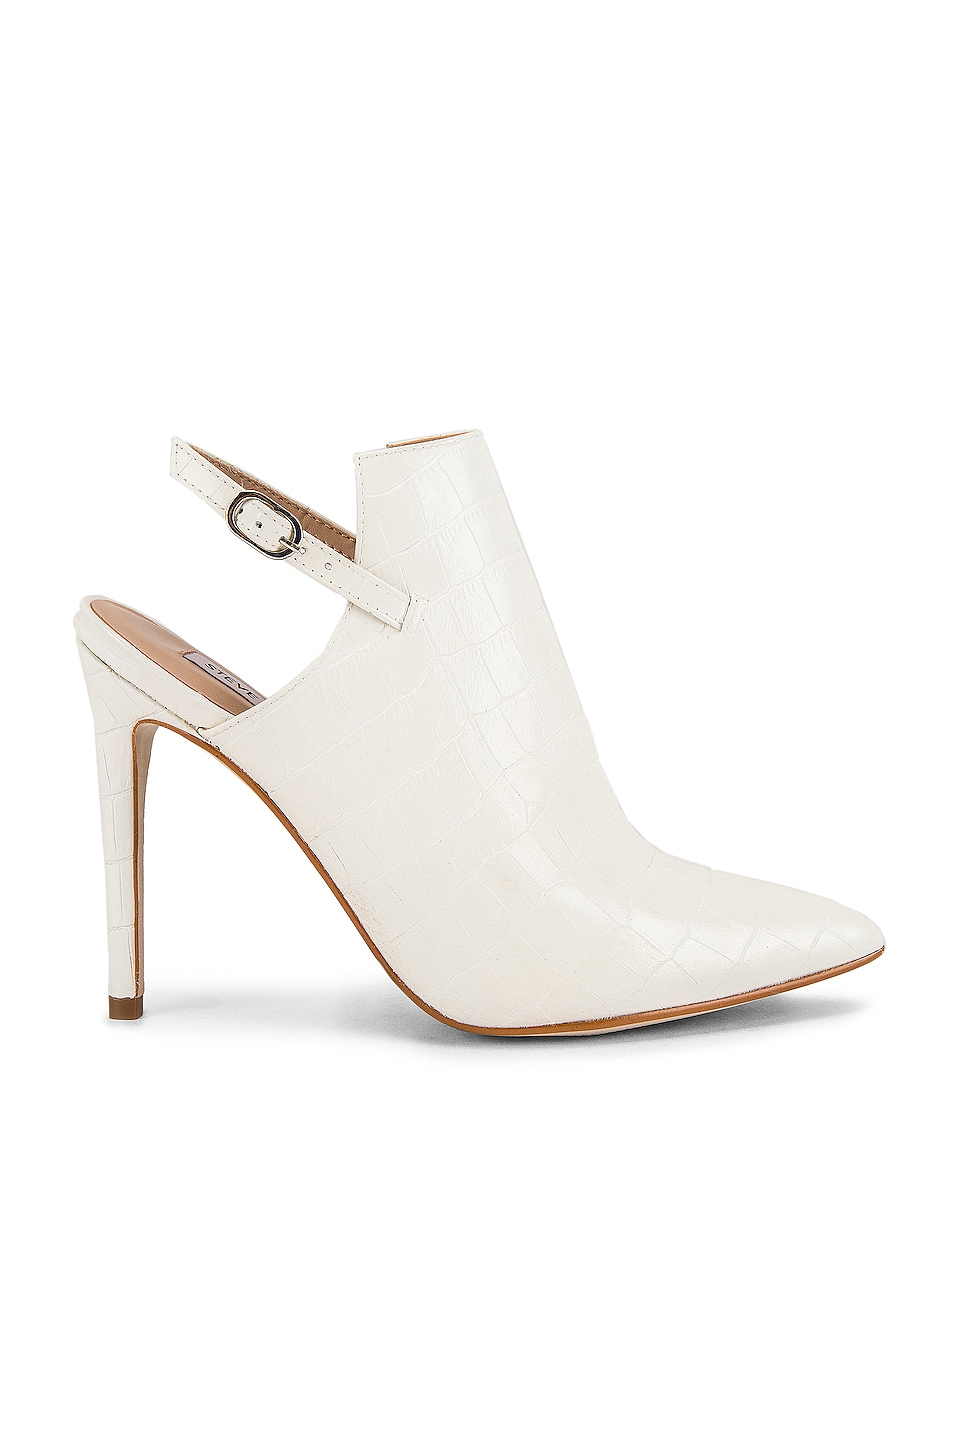 Steve Madden Daily Heel in White Crocco